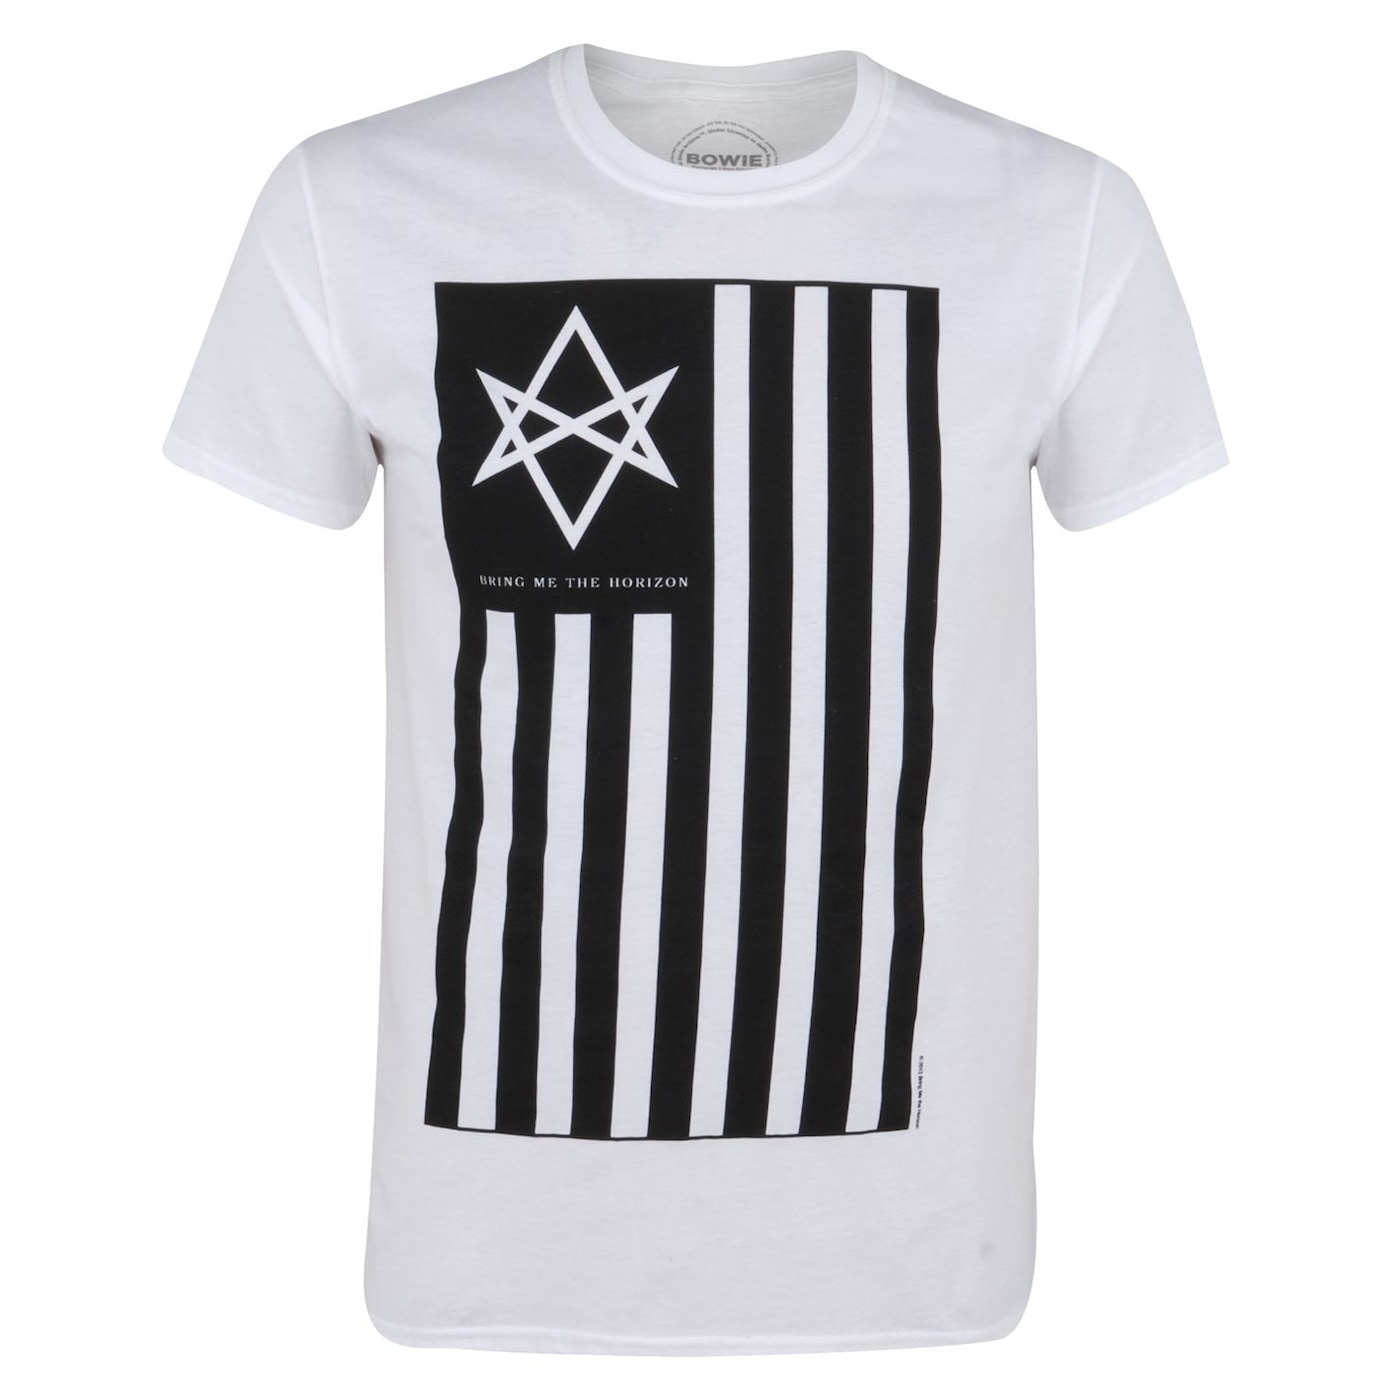 Official Bring Me The Horizon (BMTH) T Shirt